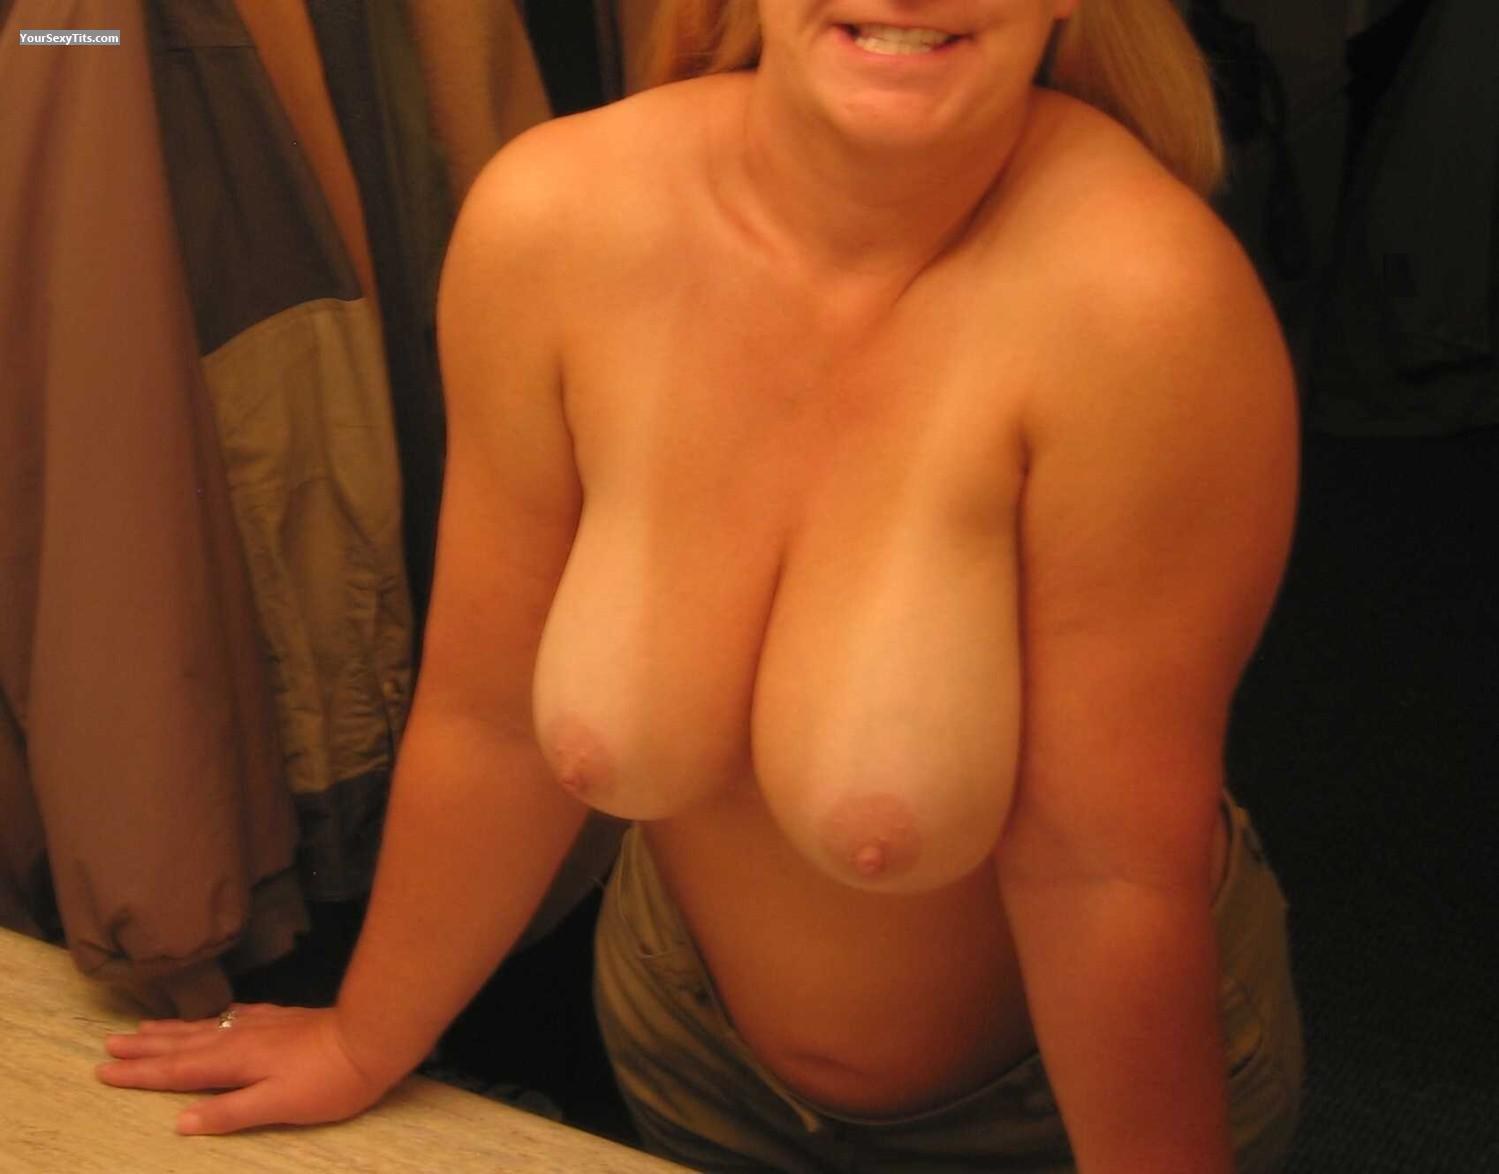 Medium Tits Of A Friend Faans Flasher